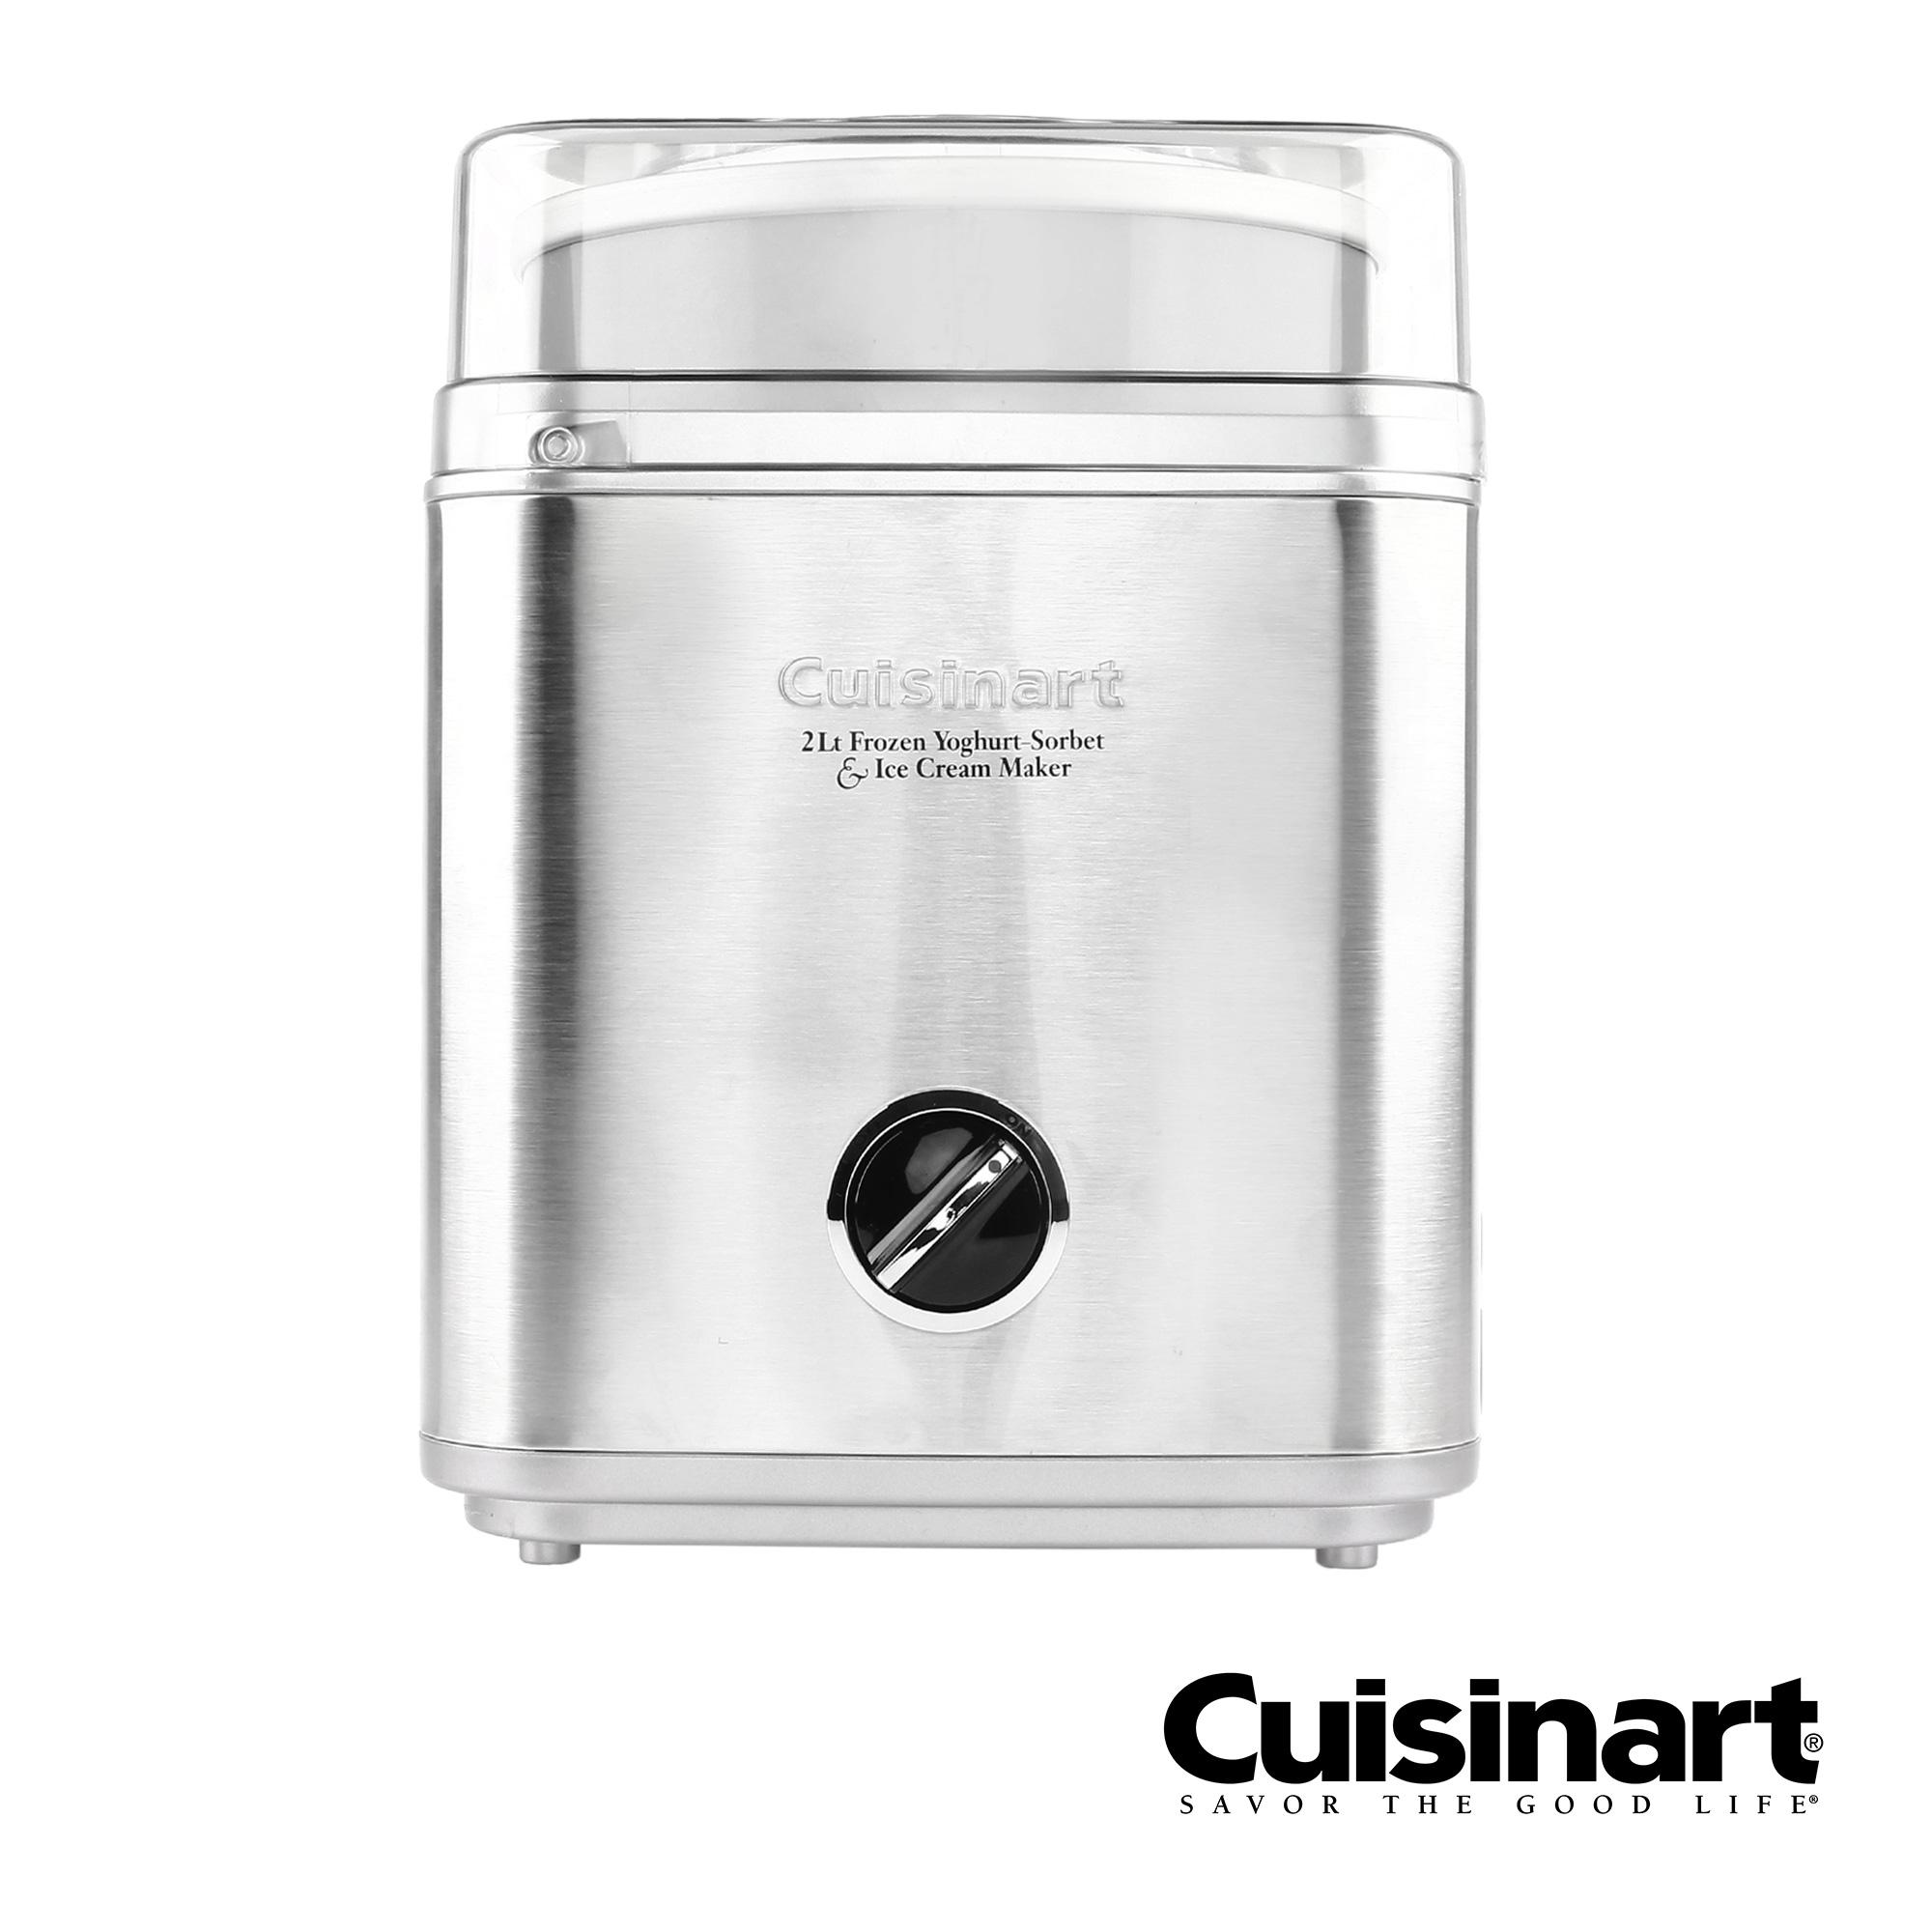 and Ice Cream Maker Cuisinart ICE-30BC 2 Quart Automatic Frozen Yogurt Sorbet